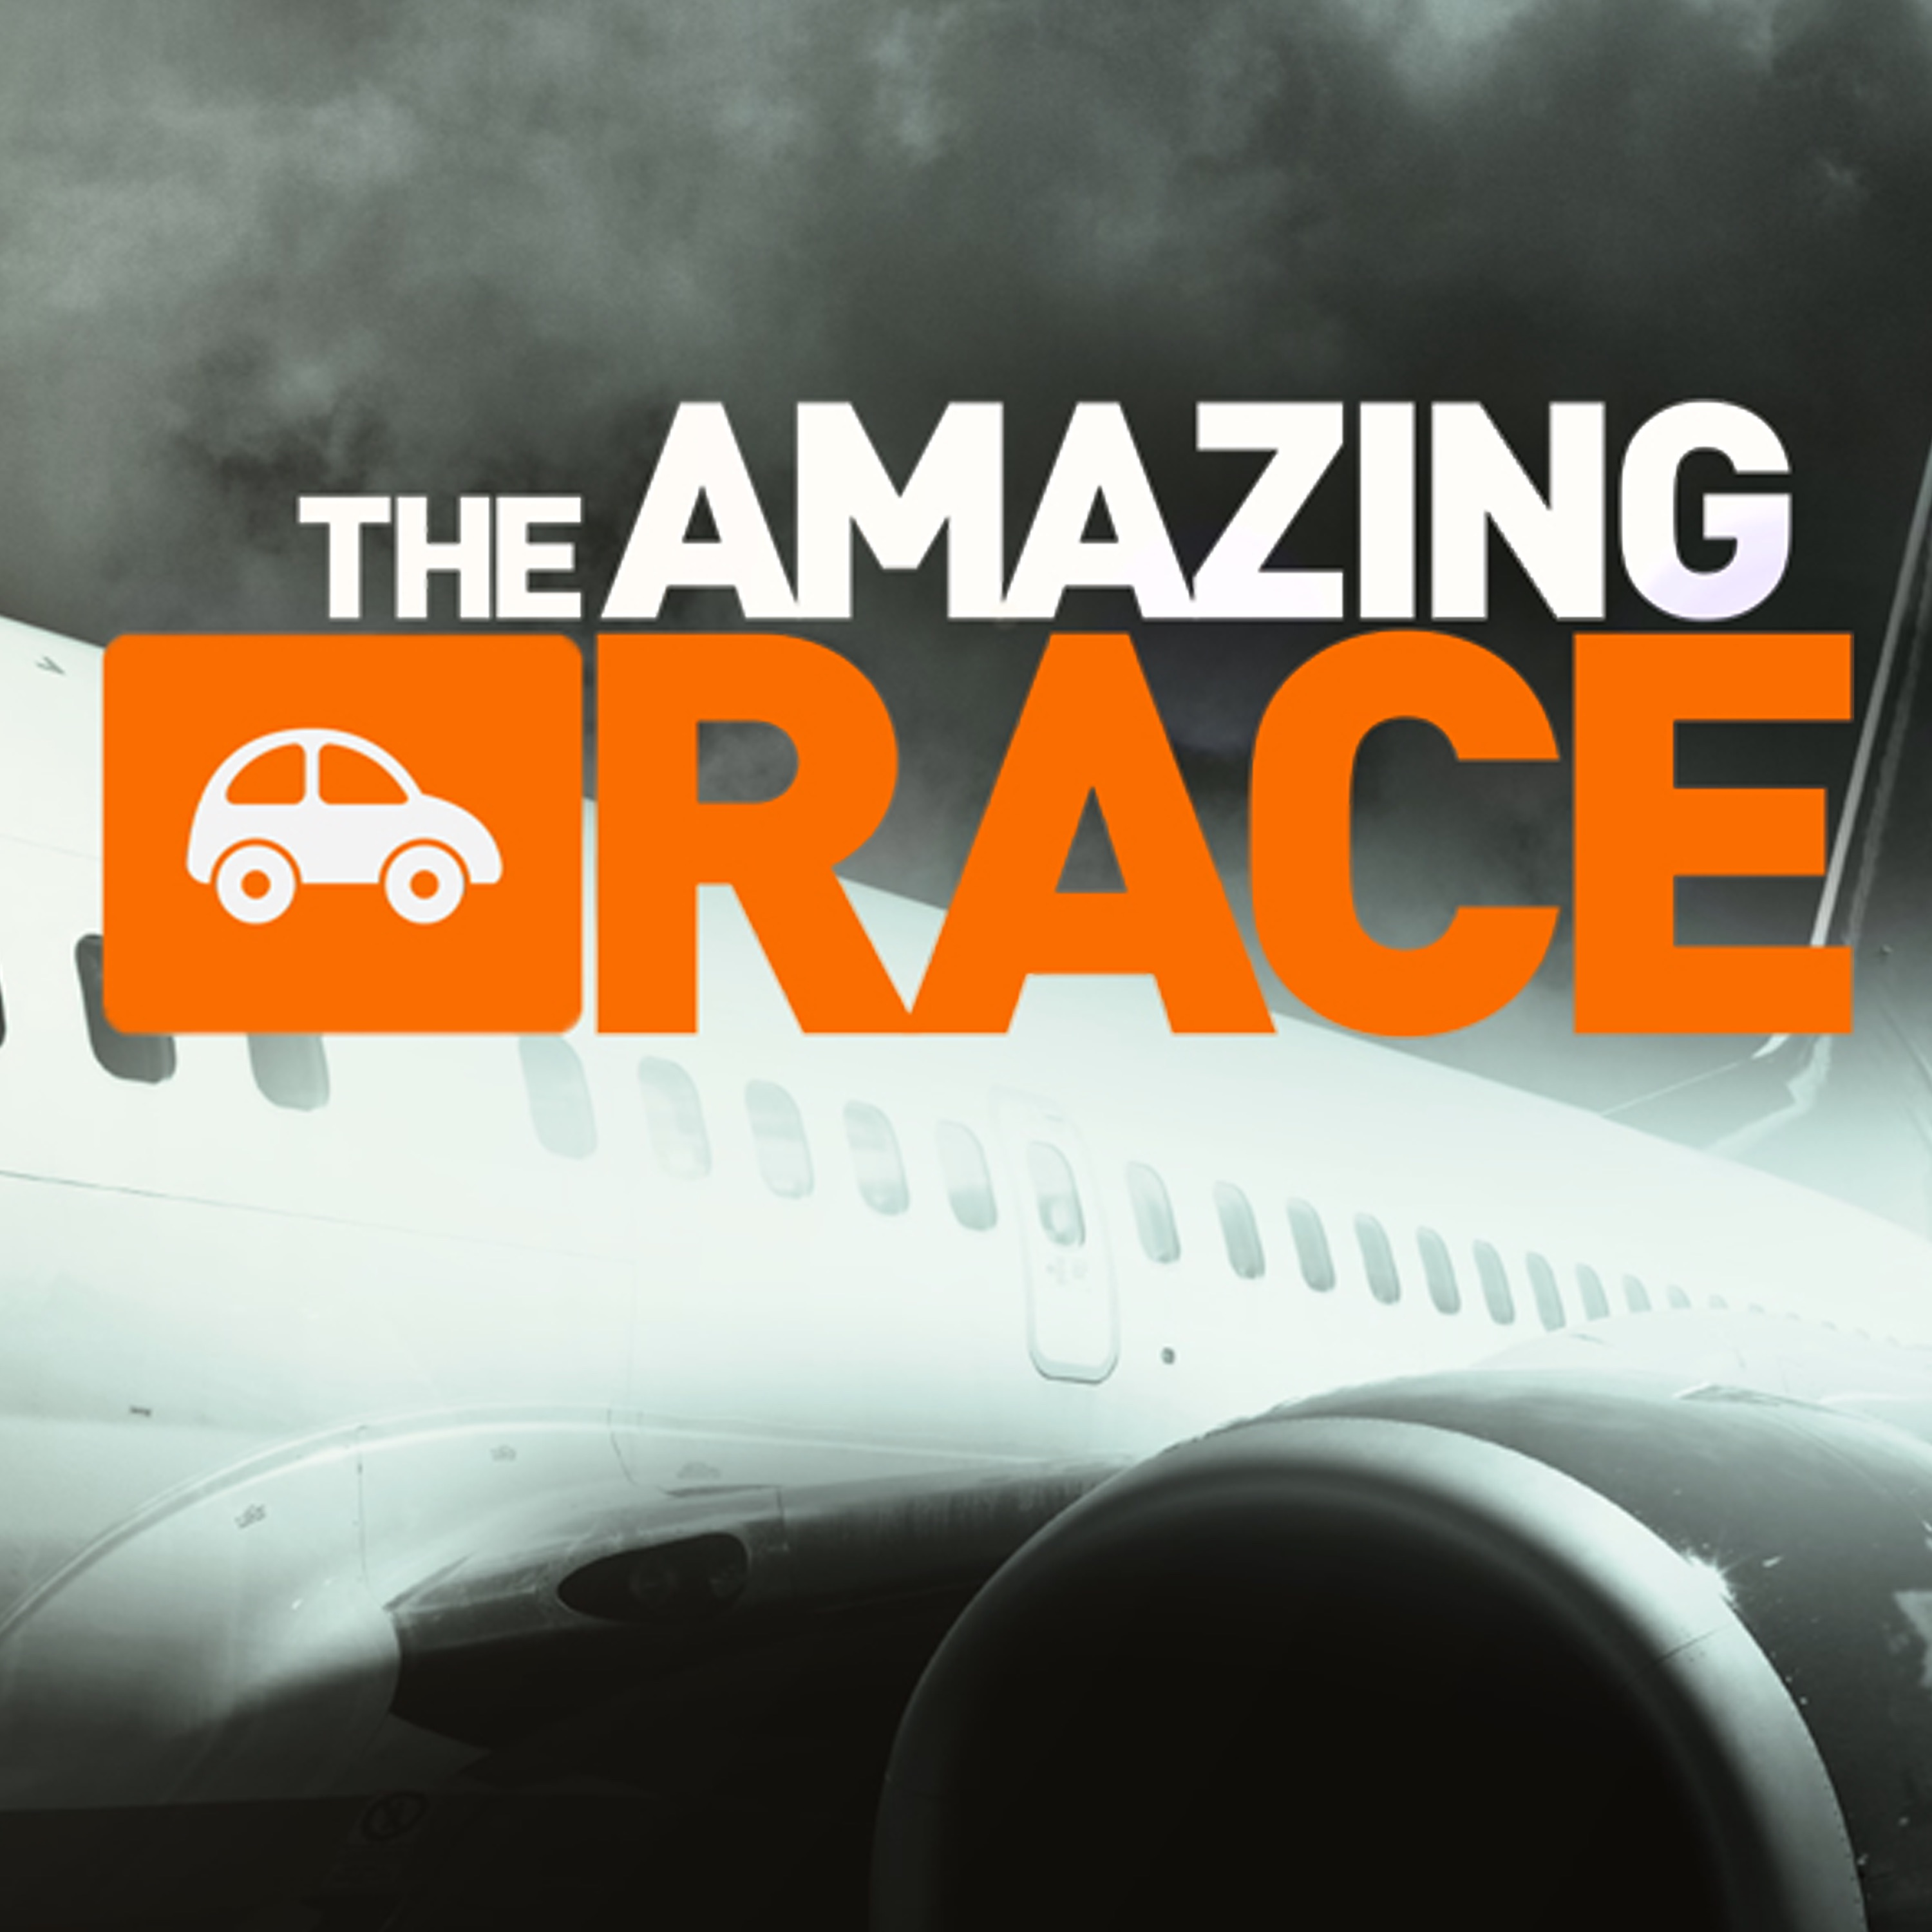 Amazing Race: The Amazing Race, Season 17 On ITunes